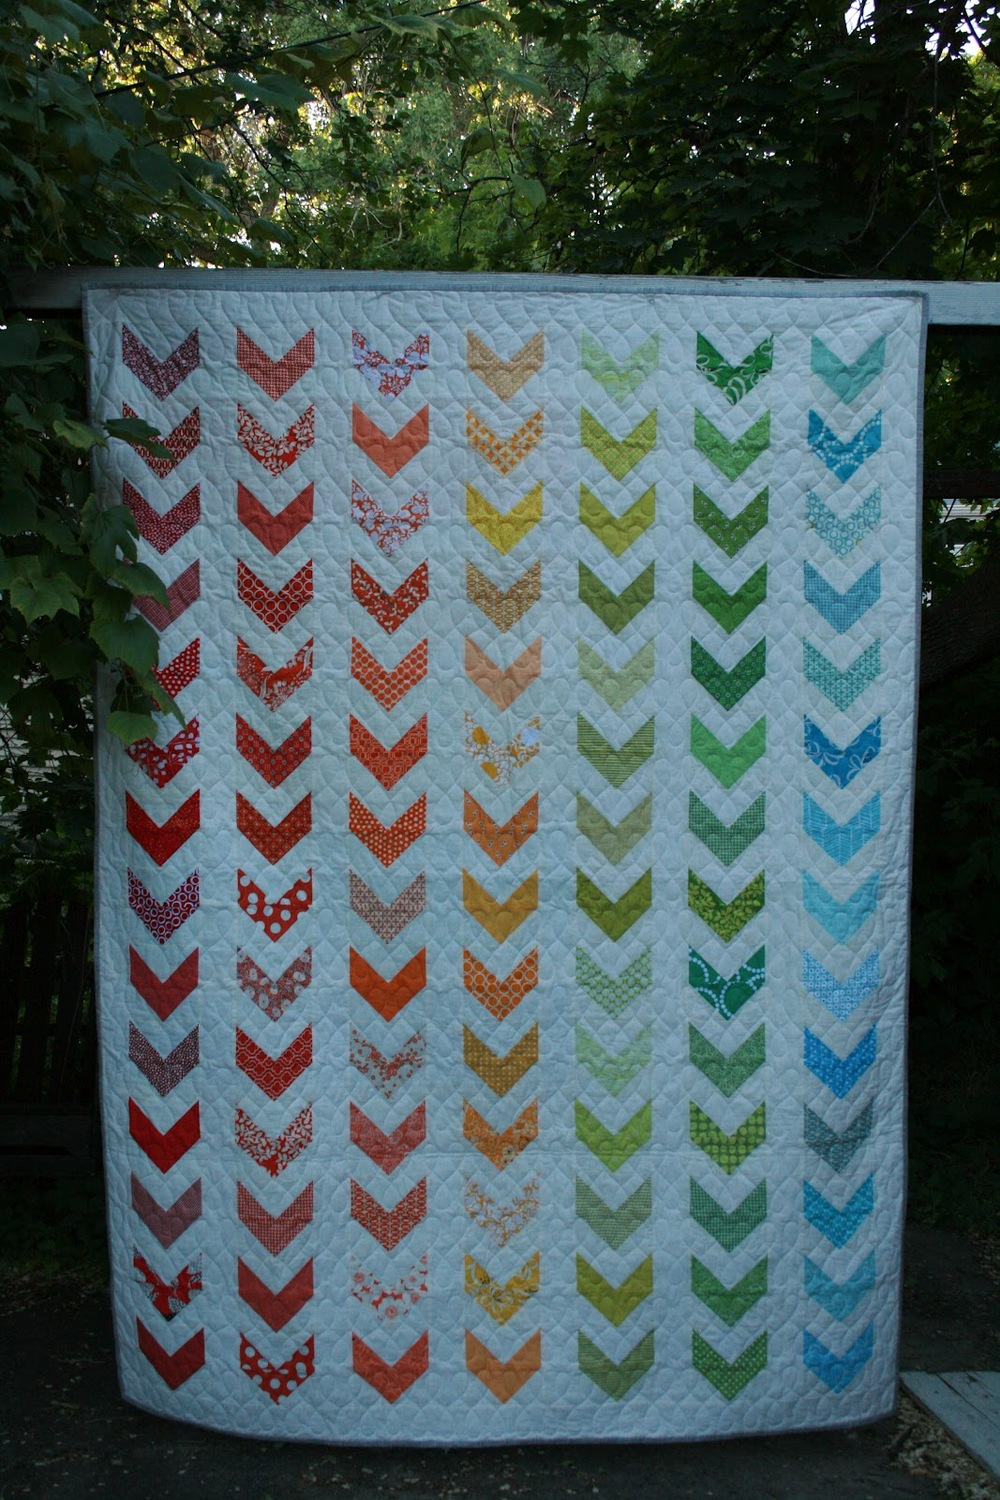 Free baby bed quilt patterns - Free Baby Bed Quilt Patterns 26